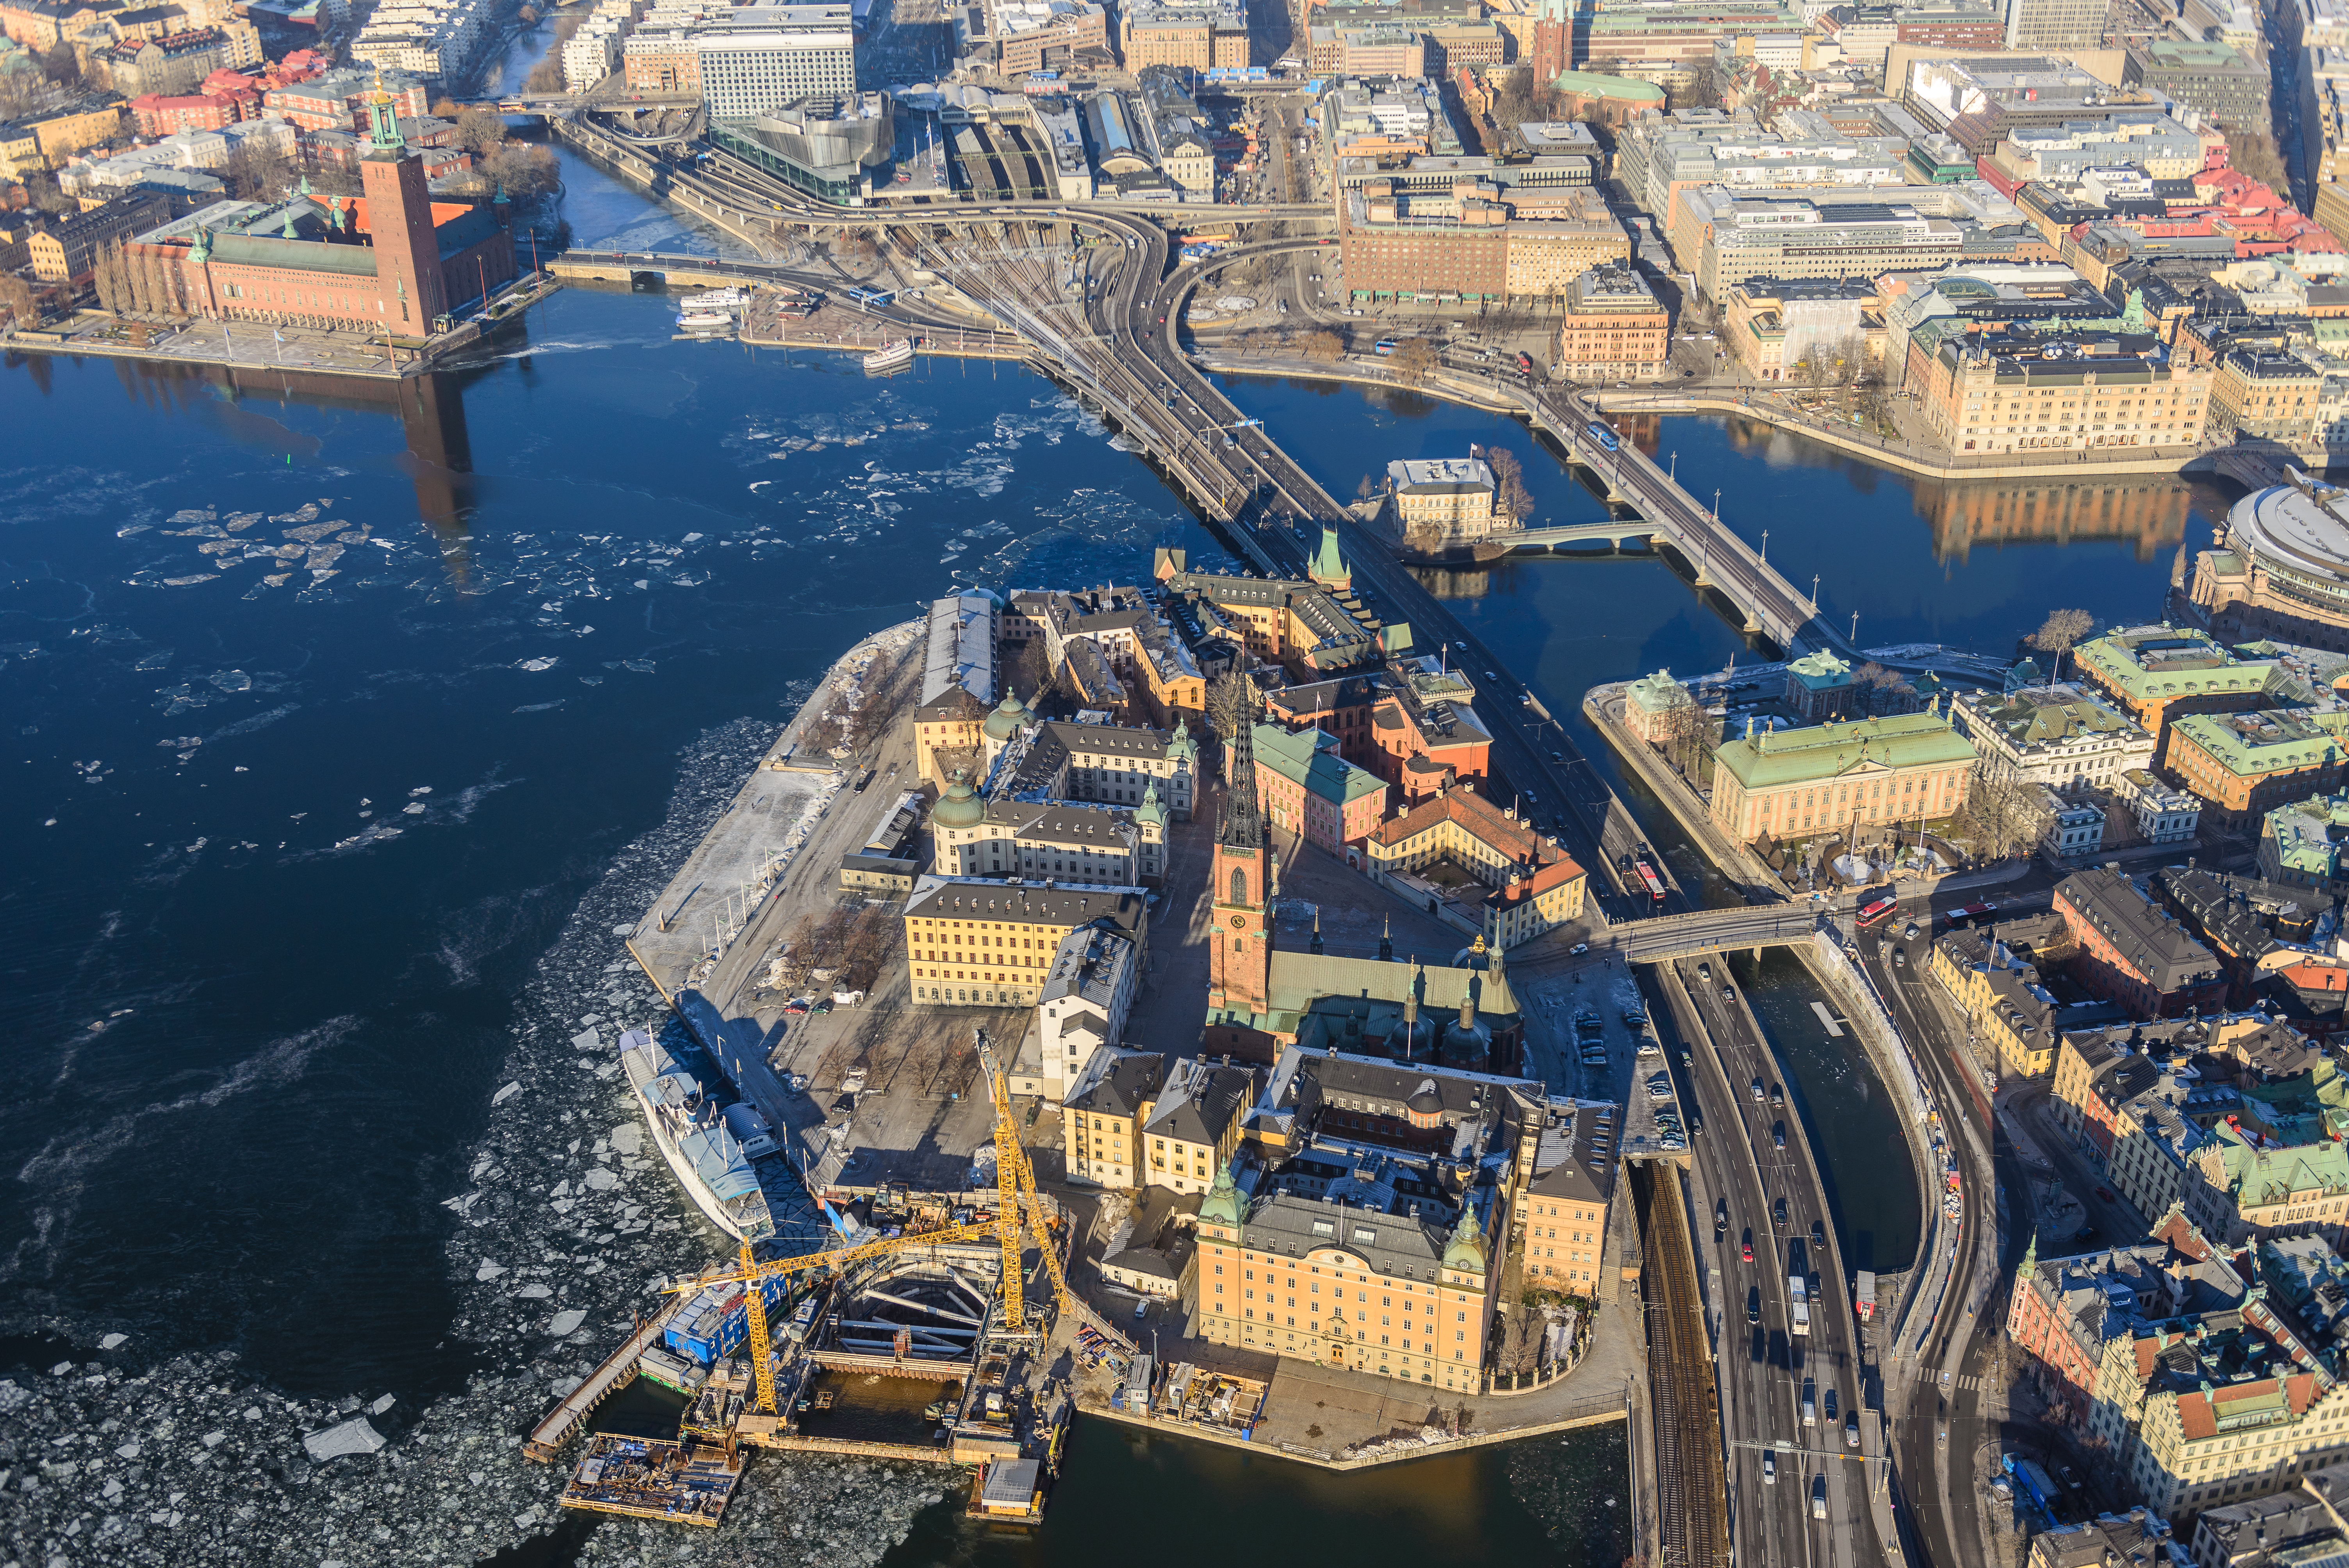 Valborg celebrations on Riddarholmen   The view from the pit…   Flickr